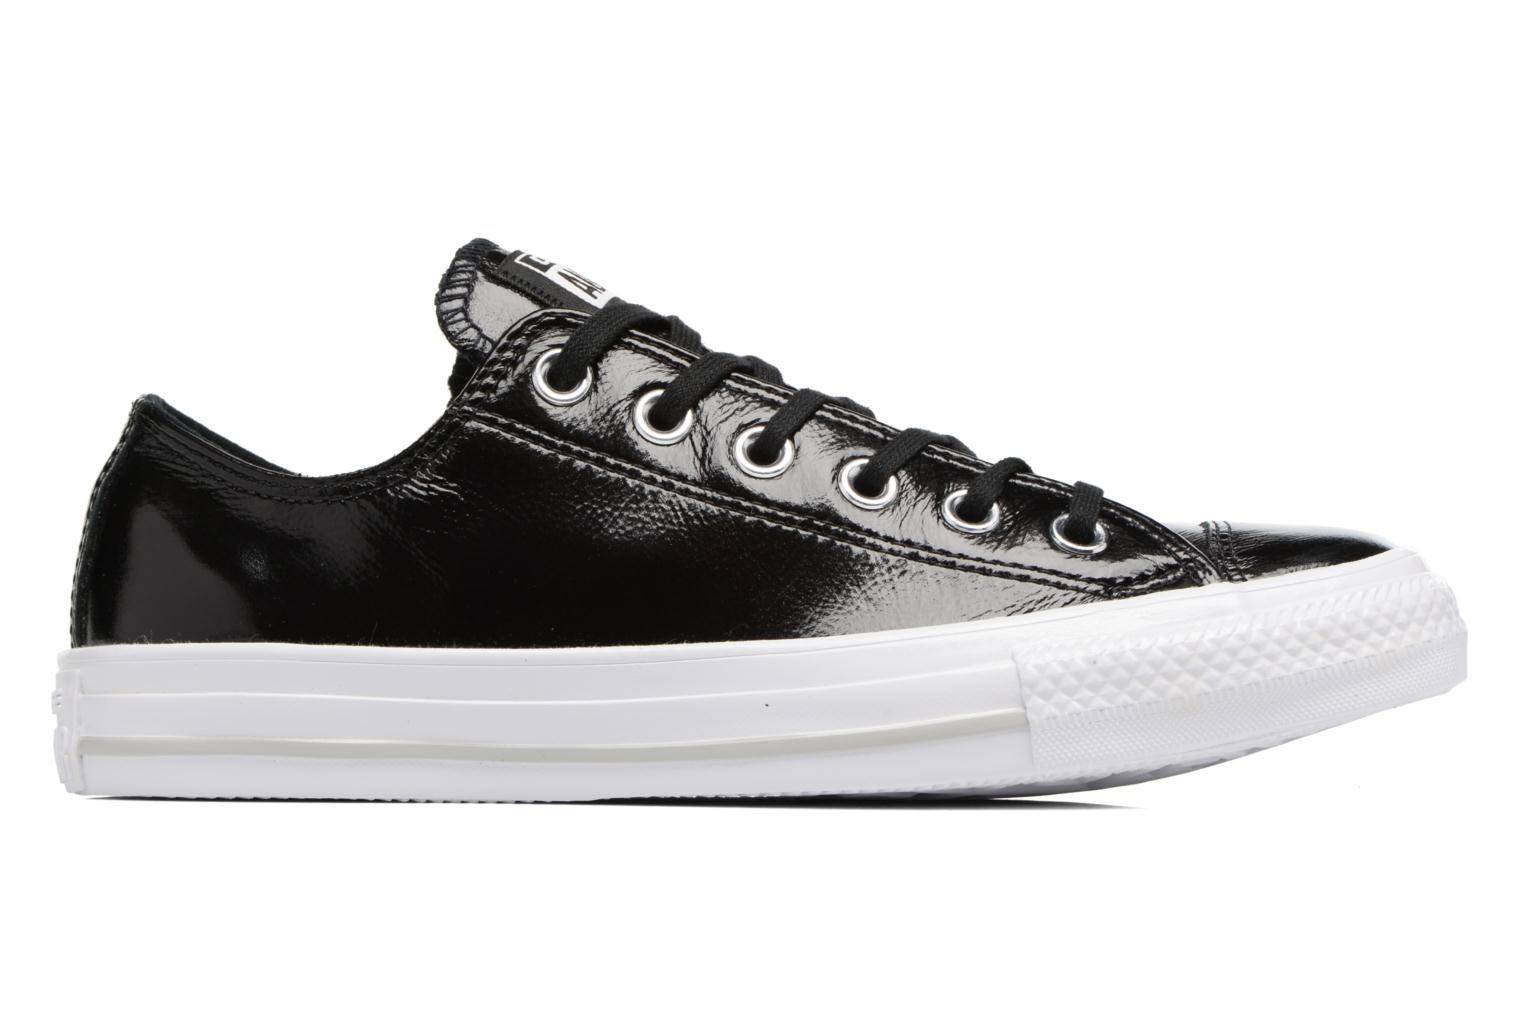 Egret/Egret/White Converse Chuck Taylor All Star Crinkled Patent Leather Ox (Blanc)